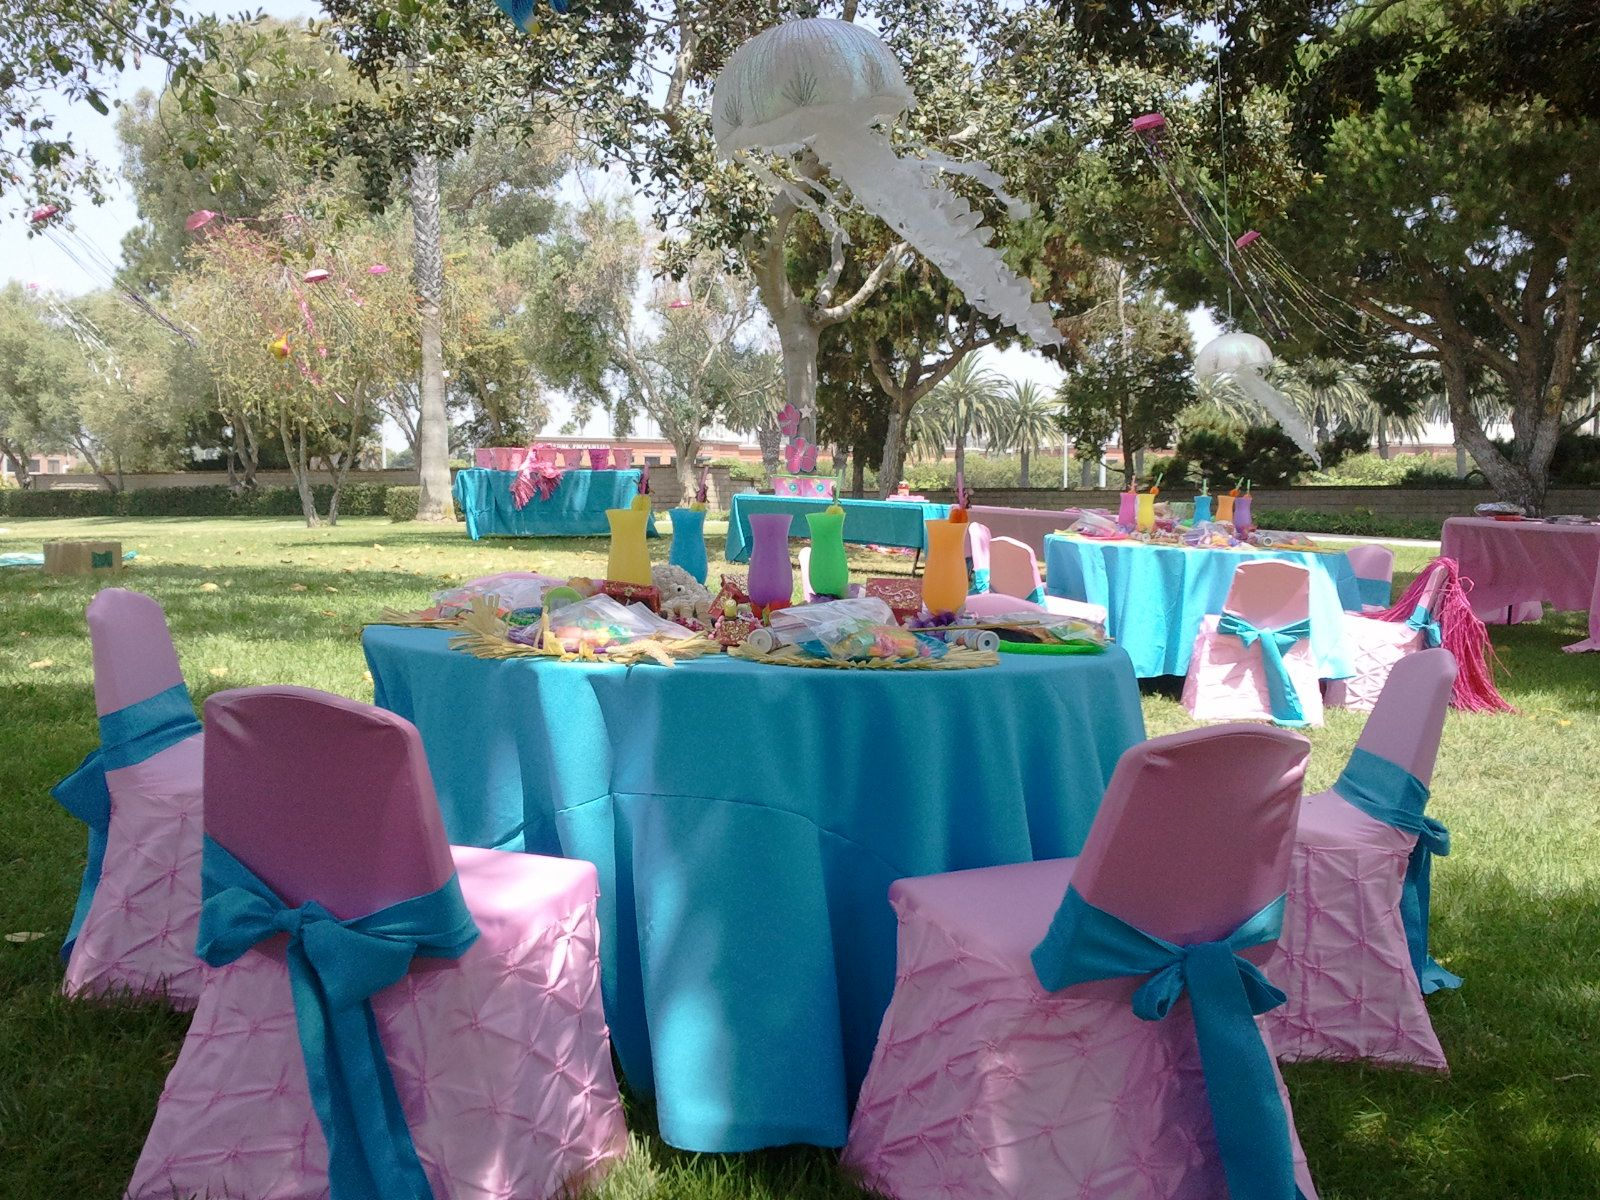 Magnificent Little Mermaid Ariel Party Ideas And Decorations Kids Party Machost Co Dining Chair Design Ideas Machostcouk